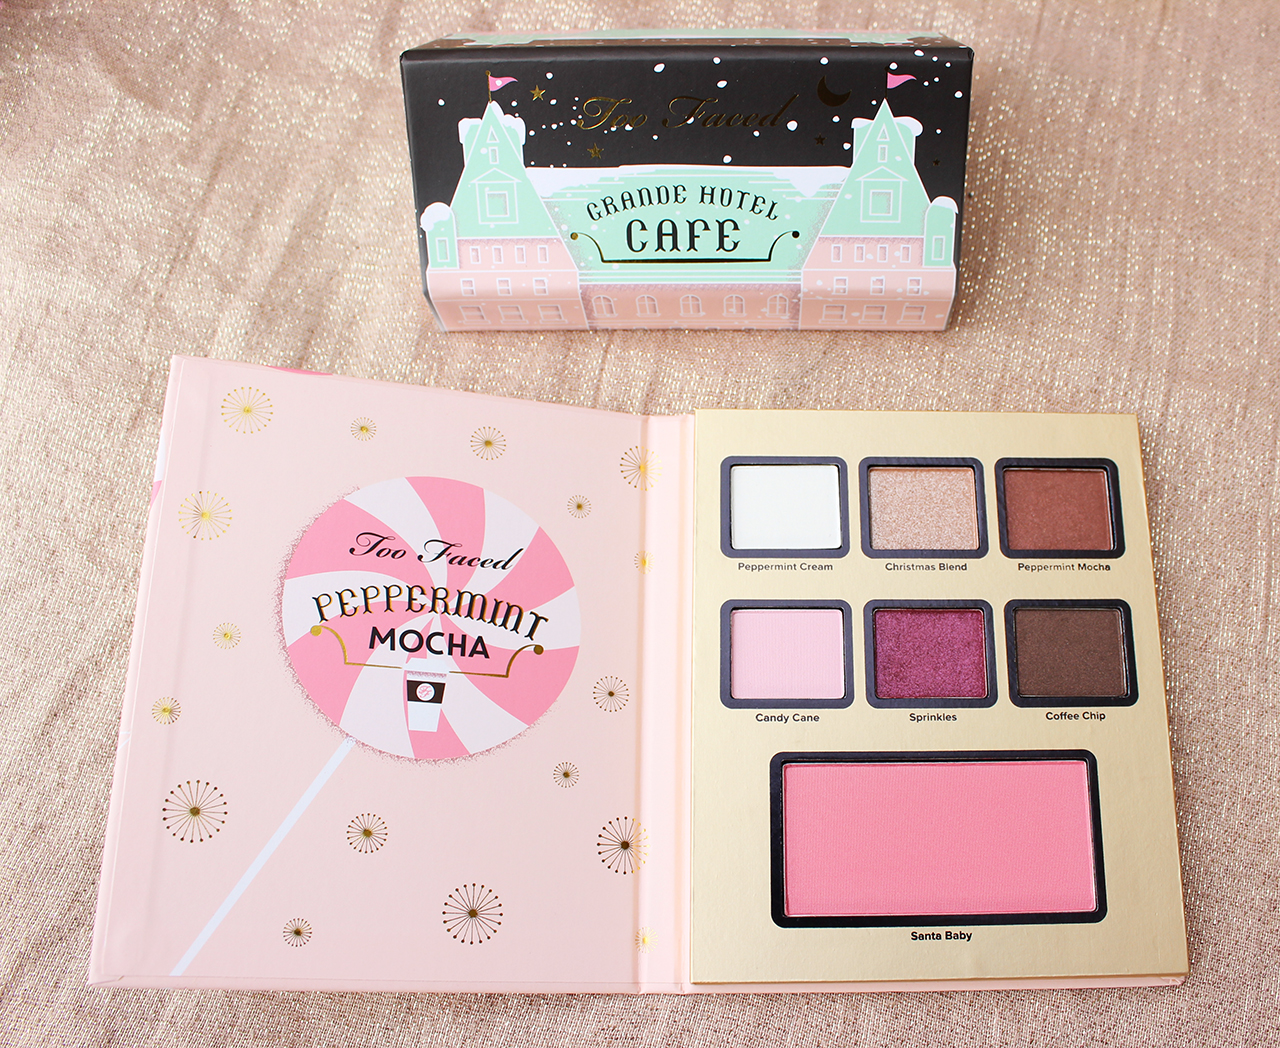 Too Faced Grande Hotel Cafe palette Peppermint Moka